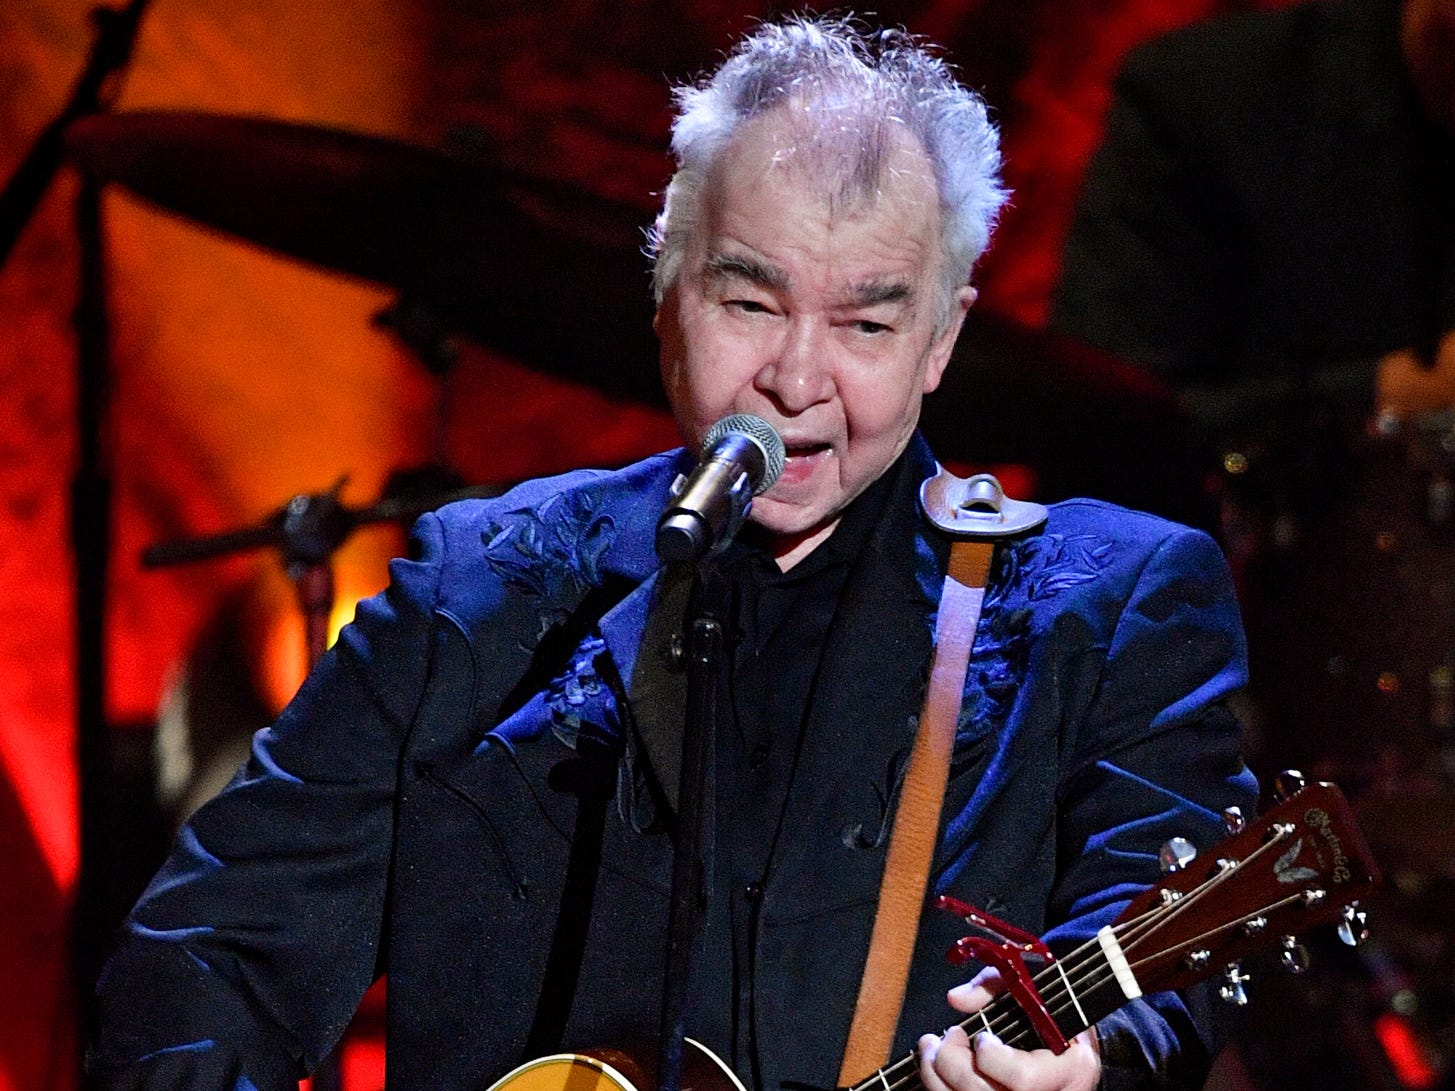 Dec. 31